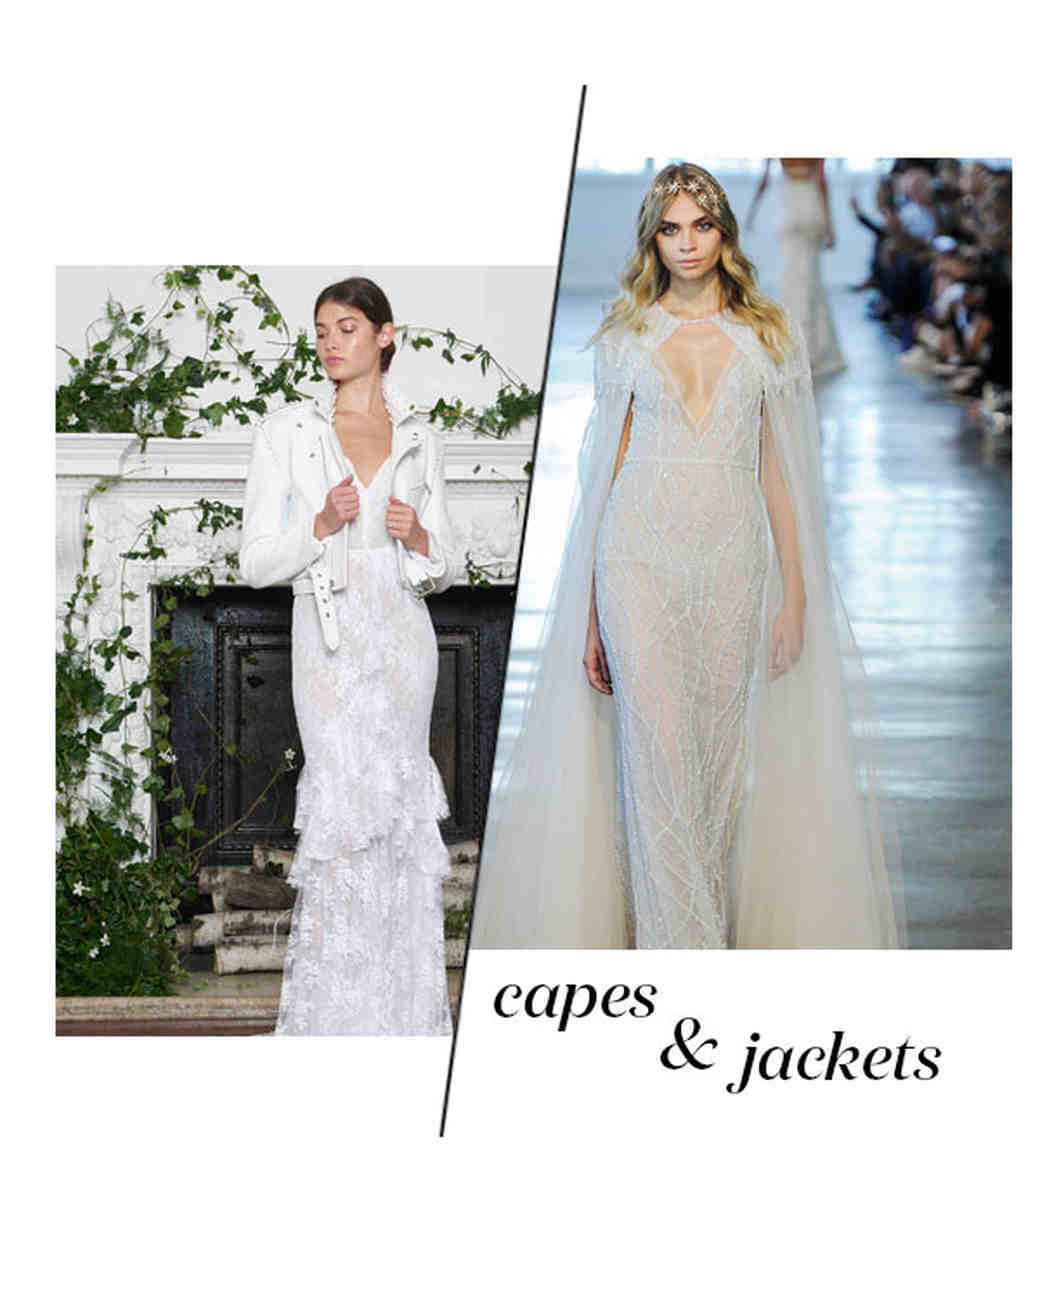 Fall 2018 Wedding Dress Trends, Capes & Jackets